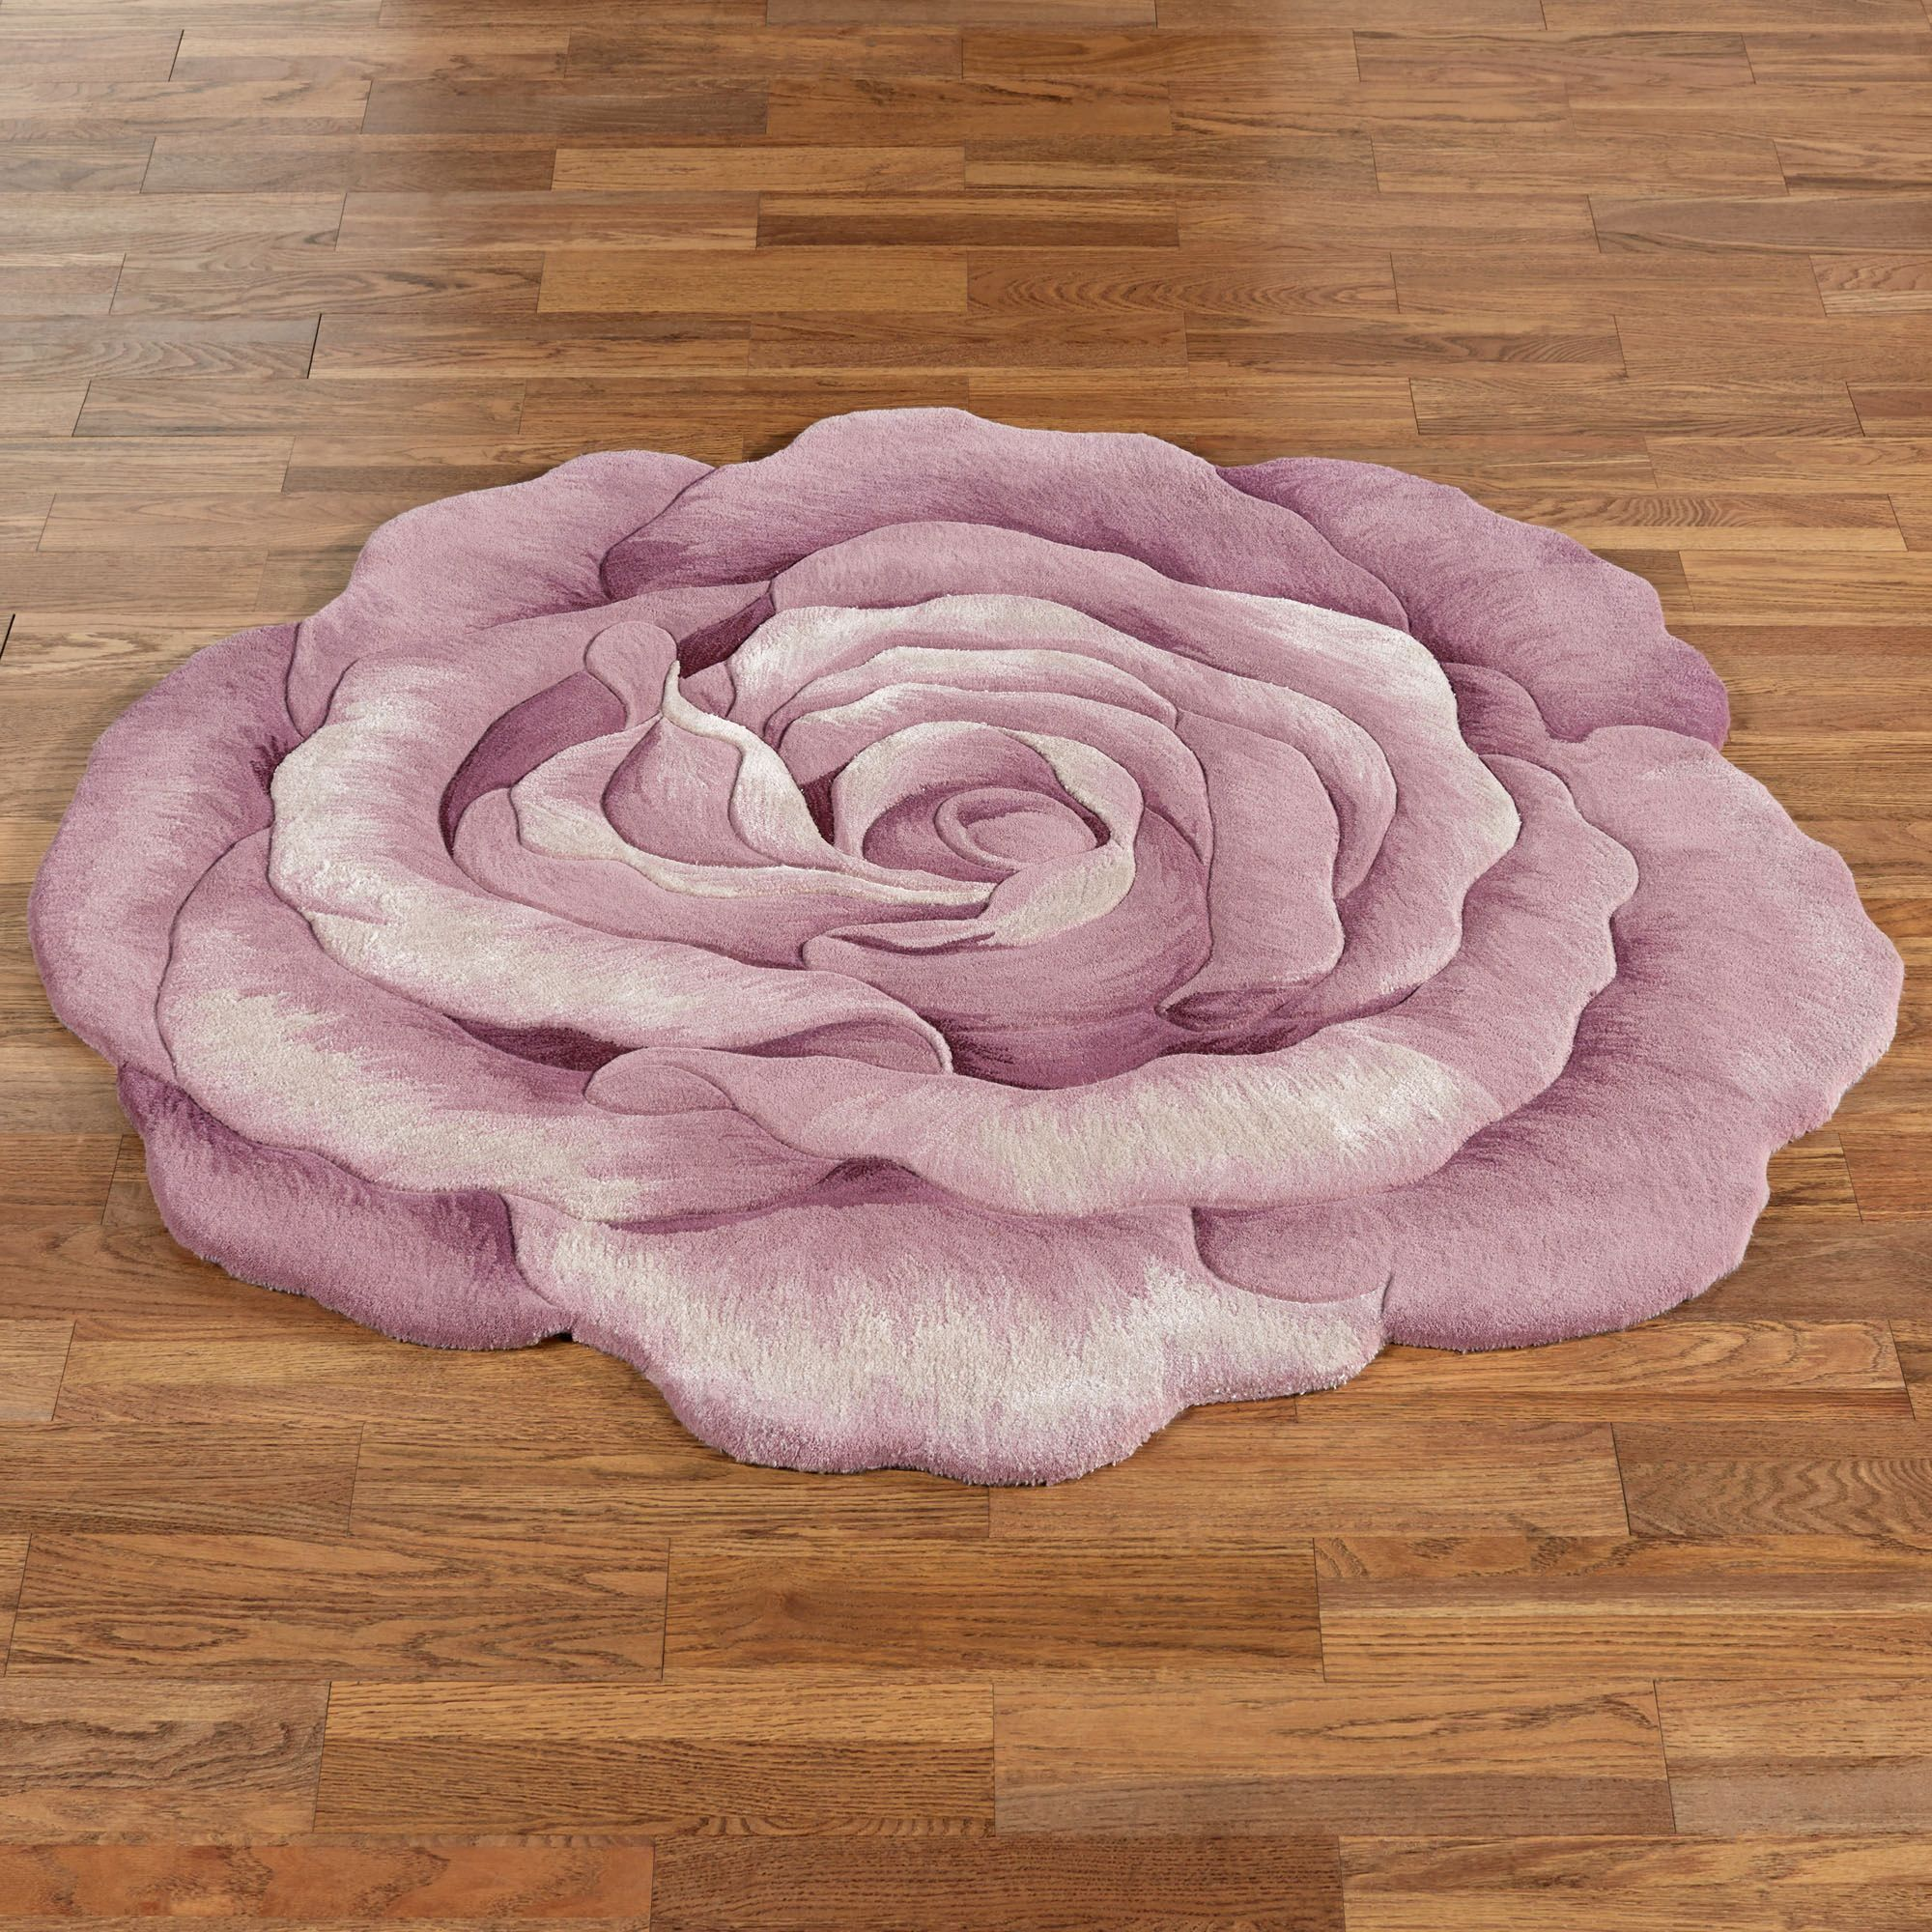 Claire bloom lavender rose flower shaped rugs casa pinterest claire bloom lavender rose flower shaped rugs mightylinksfo